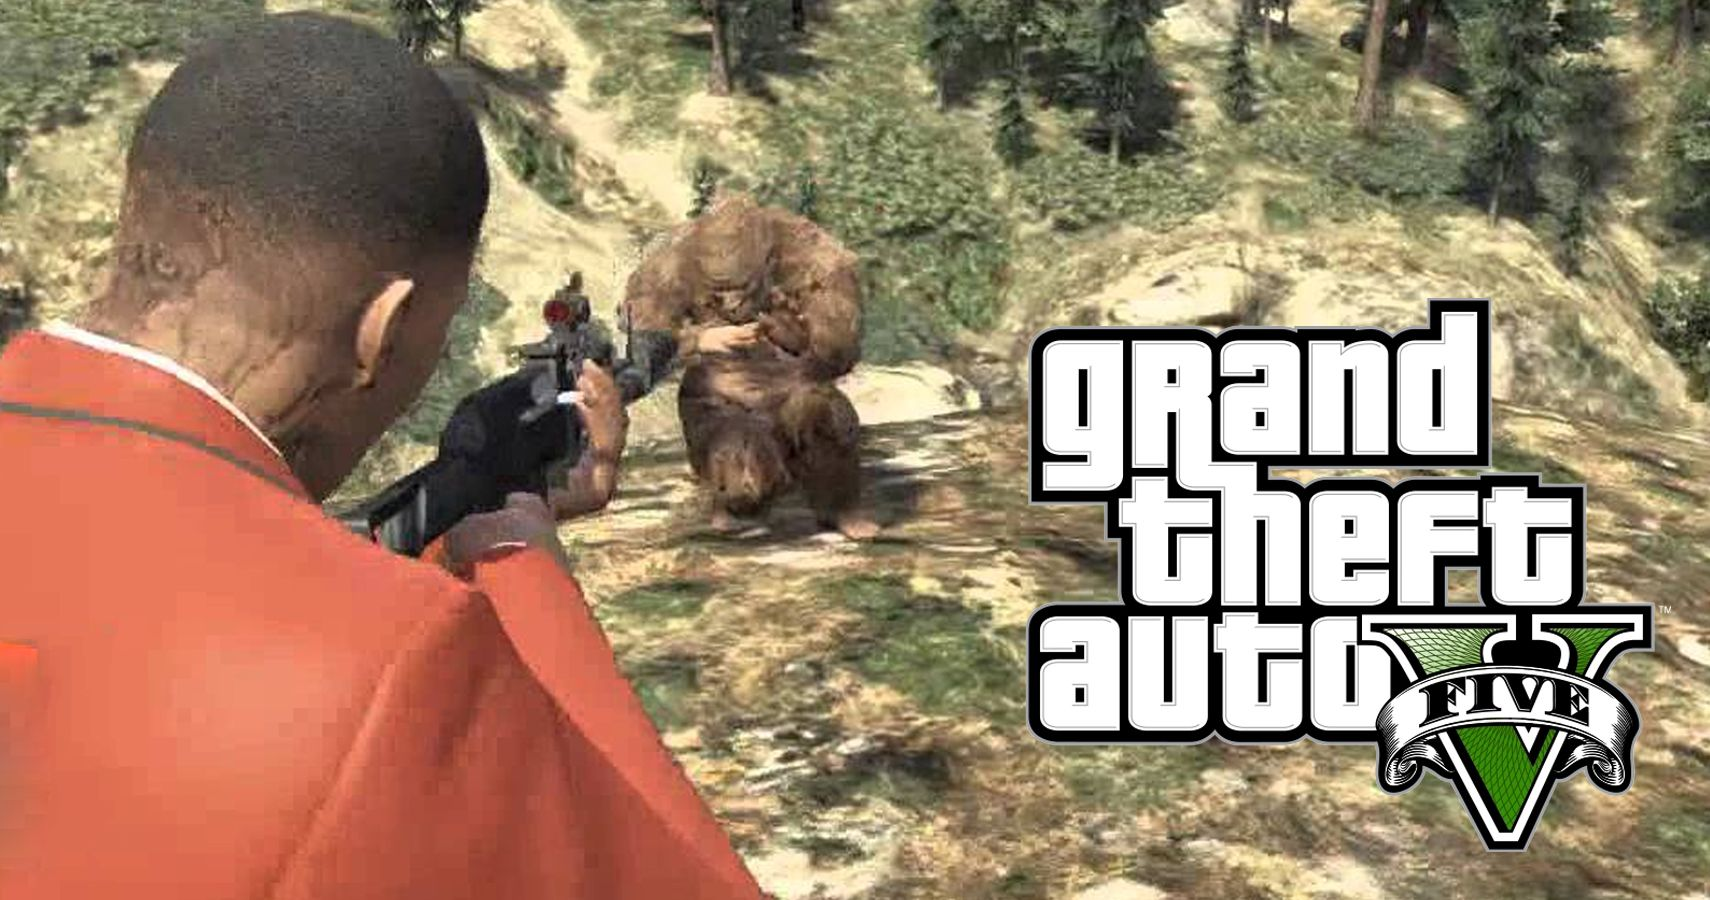 15 Awesome Missions In GTA V You Didn't Know About | TheGamer